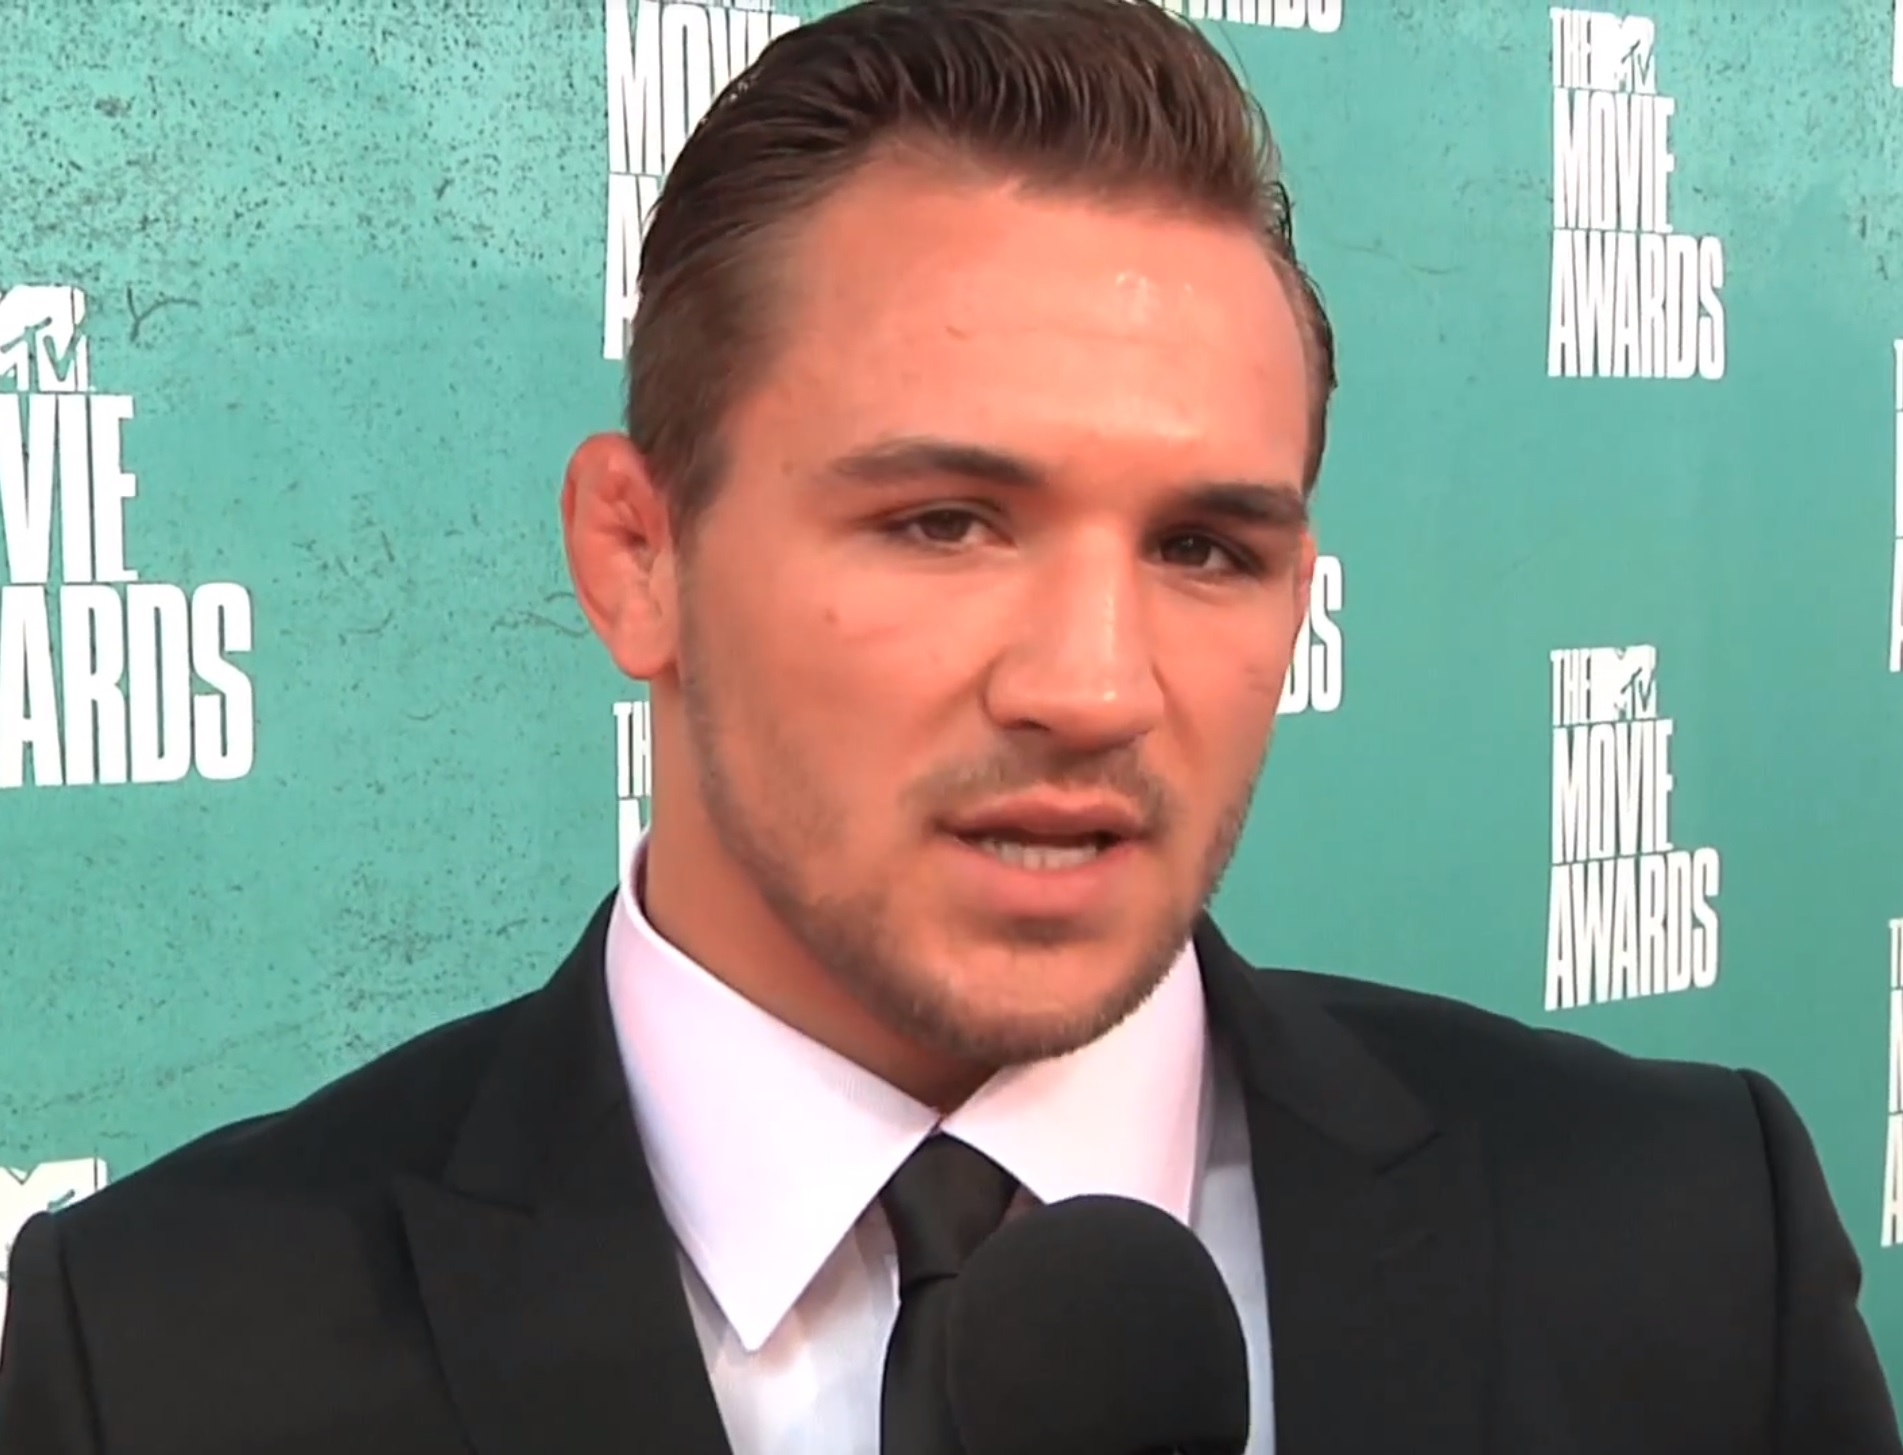 Michael Chandler interviewed at the [[MTV Movie Awards]] in 2012